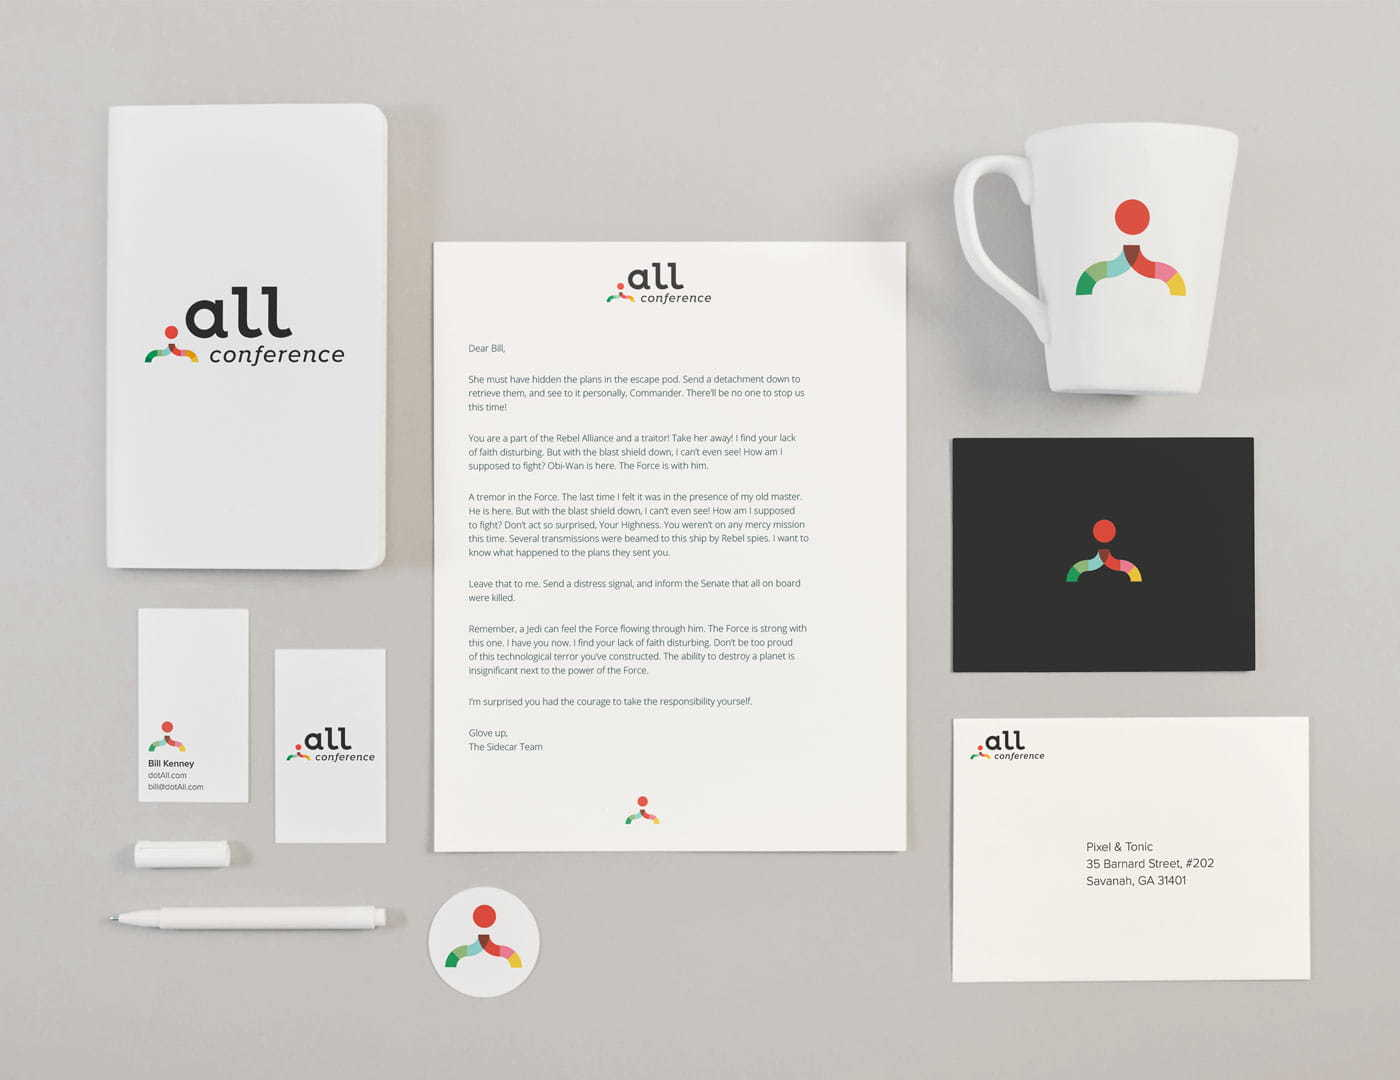 dot All brand material design, showing stickers, buttons, coffee mug, letterhead, business card etc.